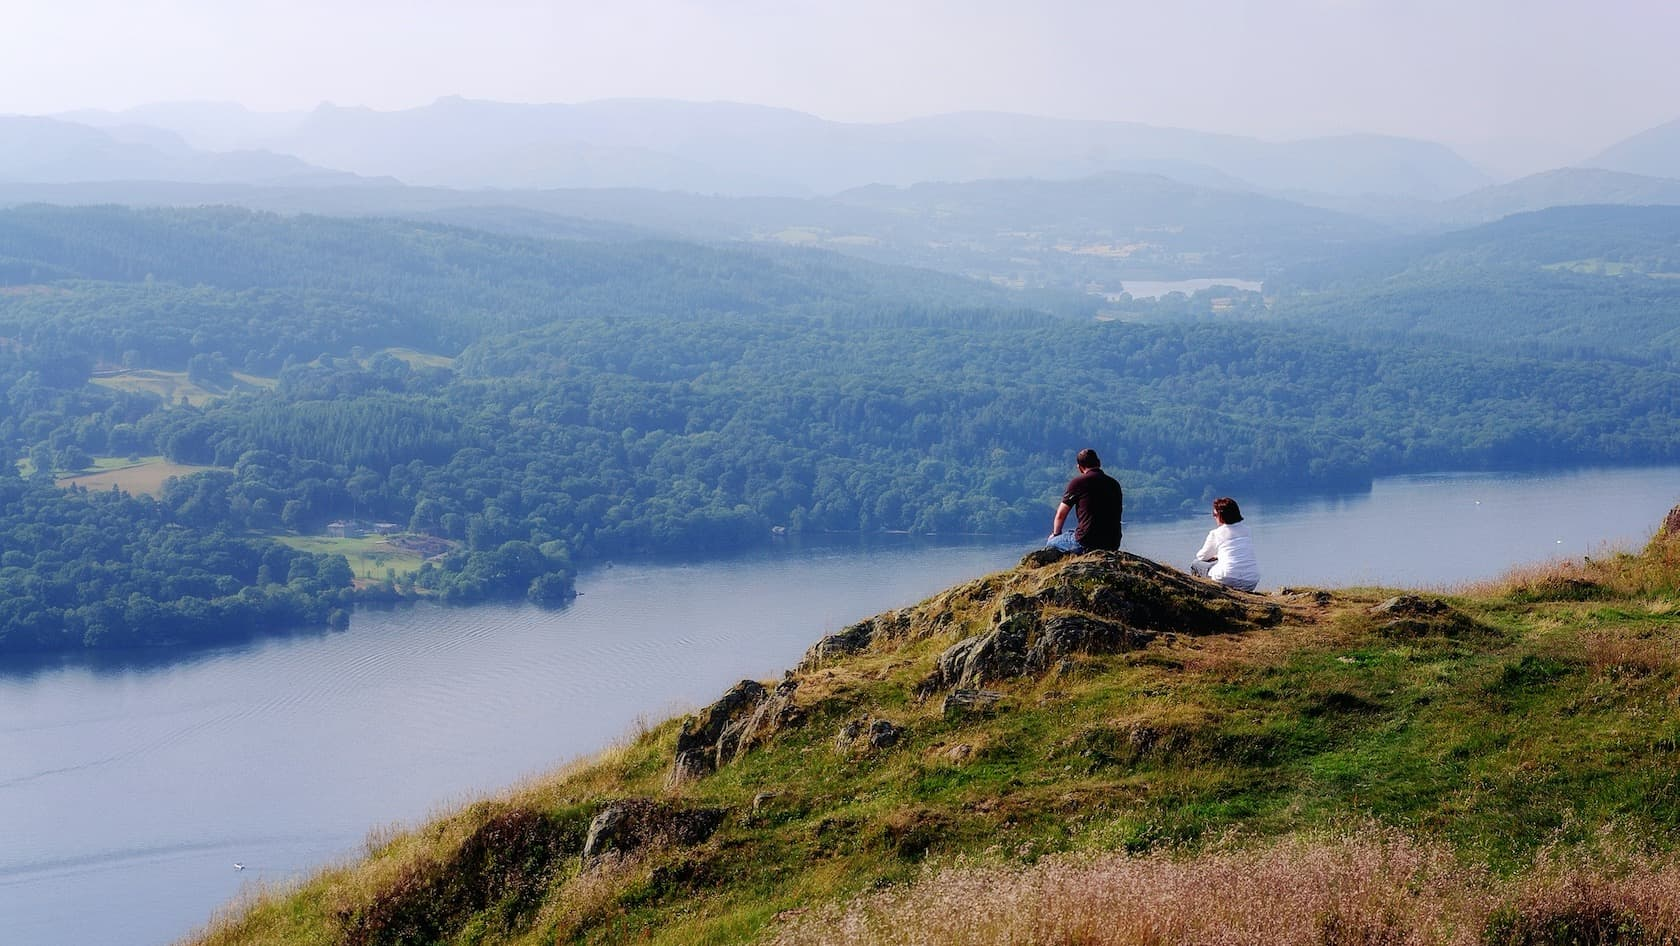 The view over Lake Windermere from Gummer's How. Photo by mattbuck, licensed CC-by-SA-3.0